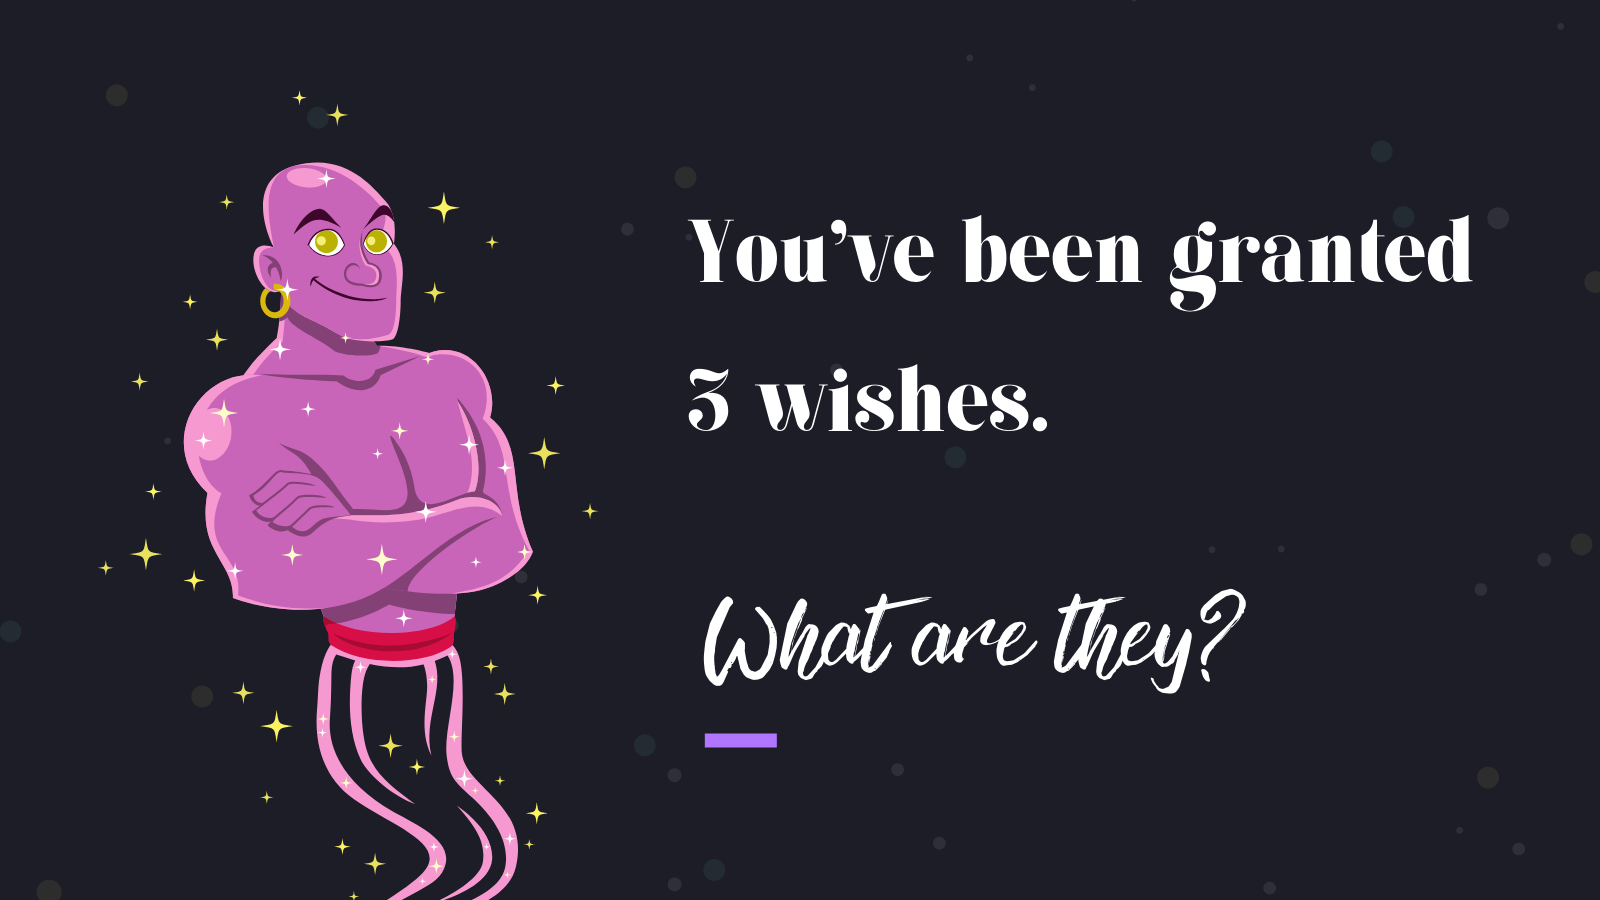 You've been granted 3 wishes. What are they? - Writing Challenge